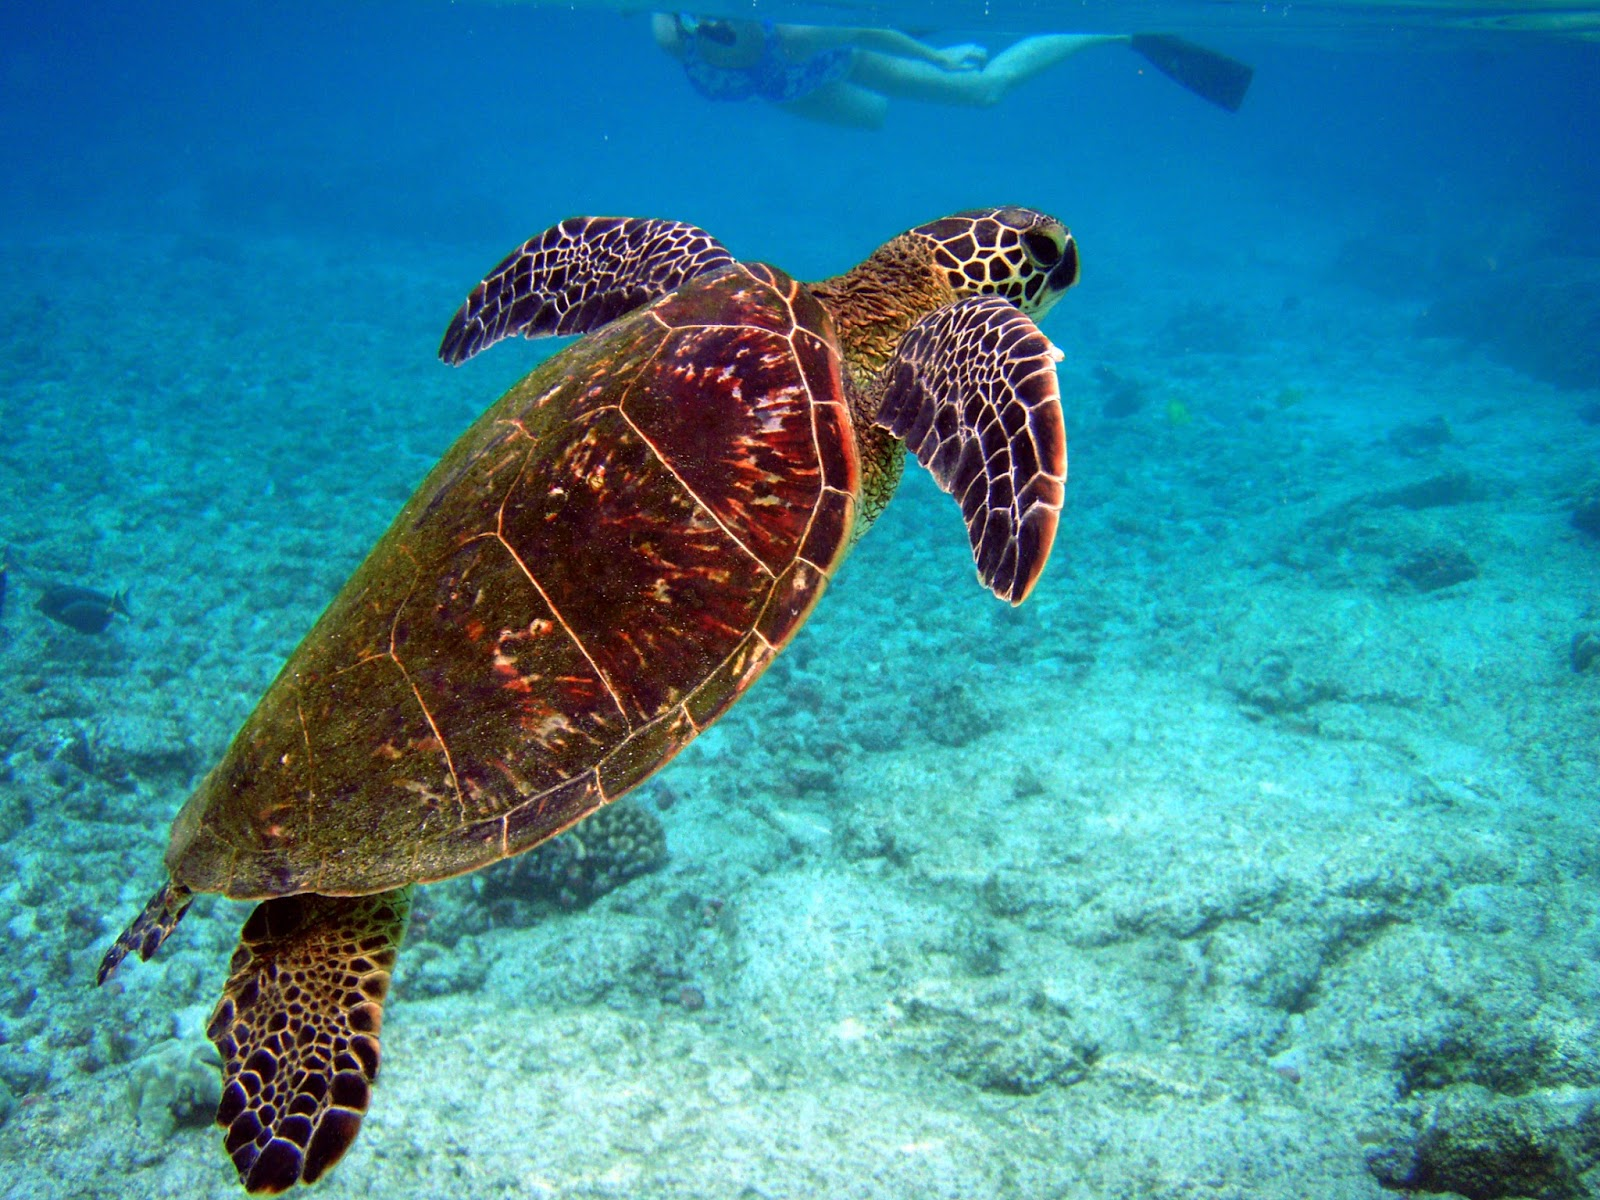 El Apareamiento De Las Tortugas Animals Of The World